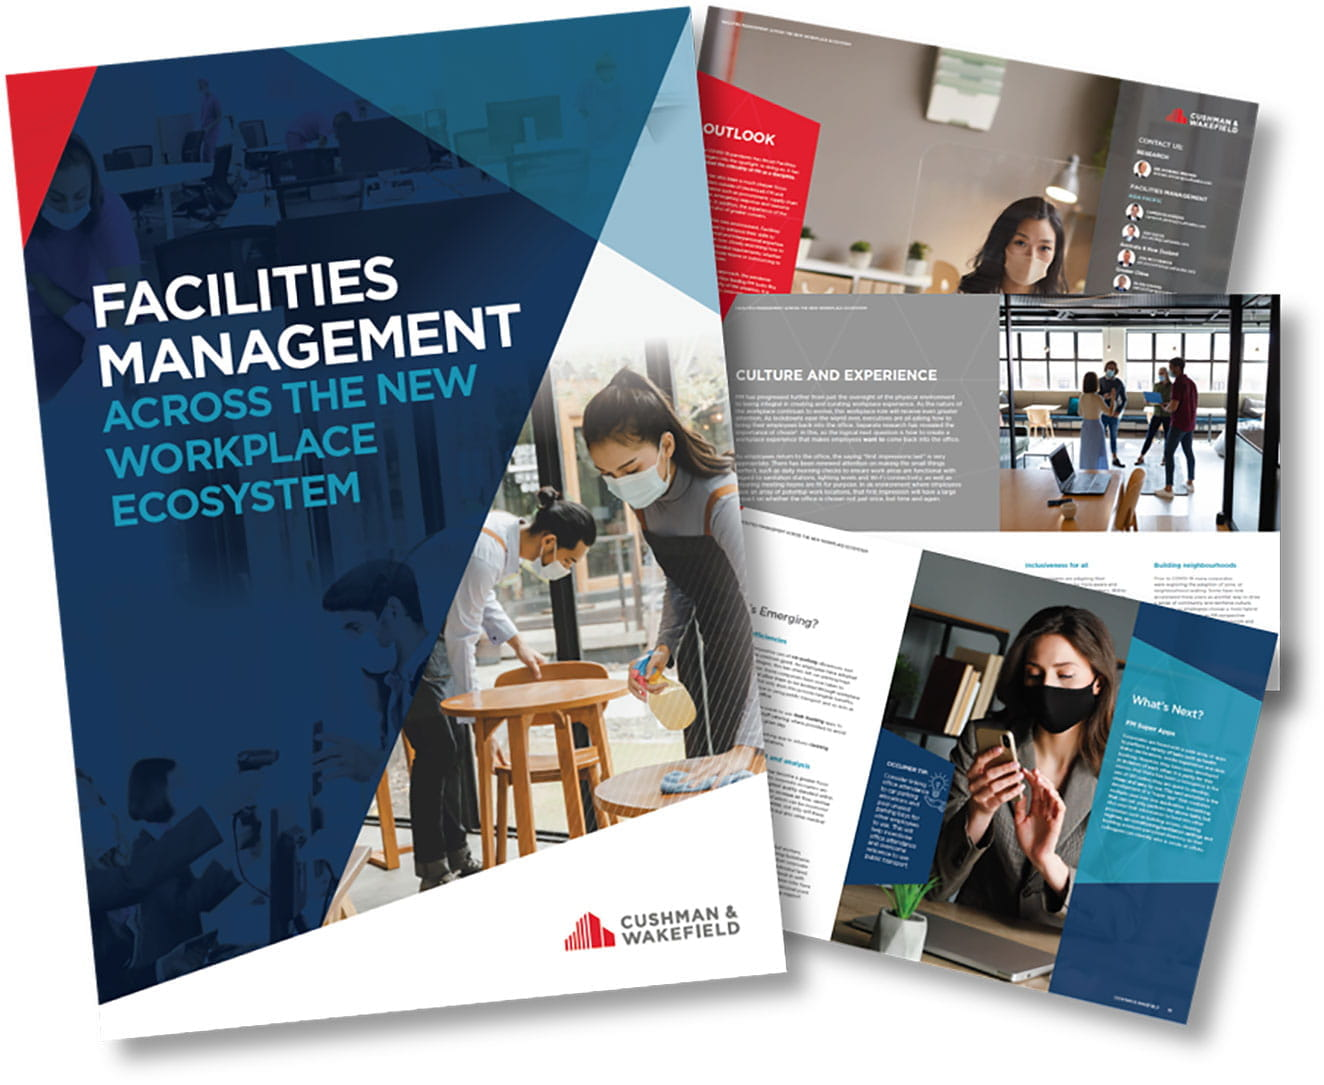 Facilities Management Across the New Workplace Ecosystem